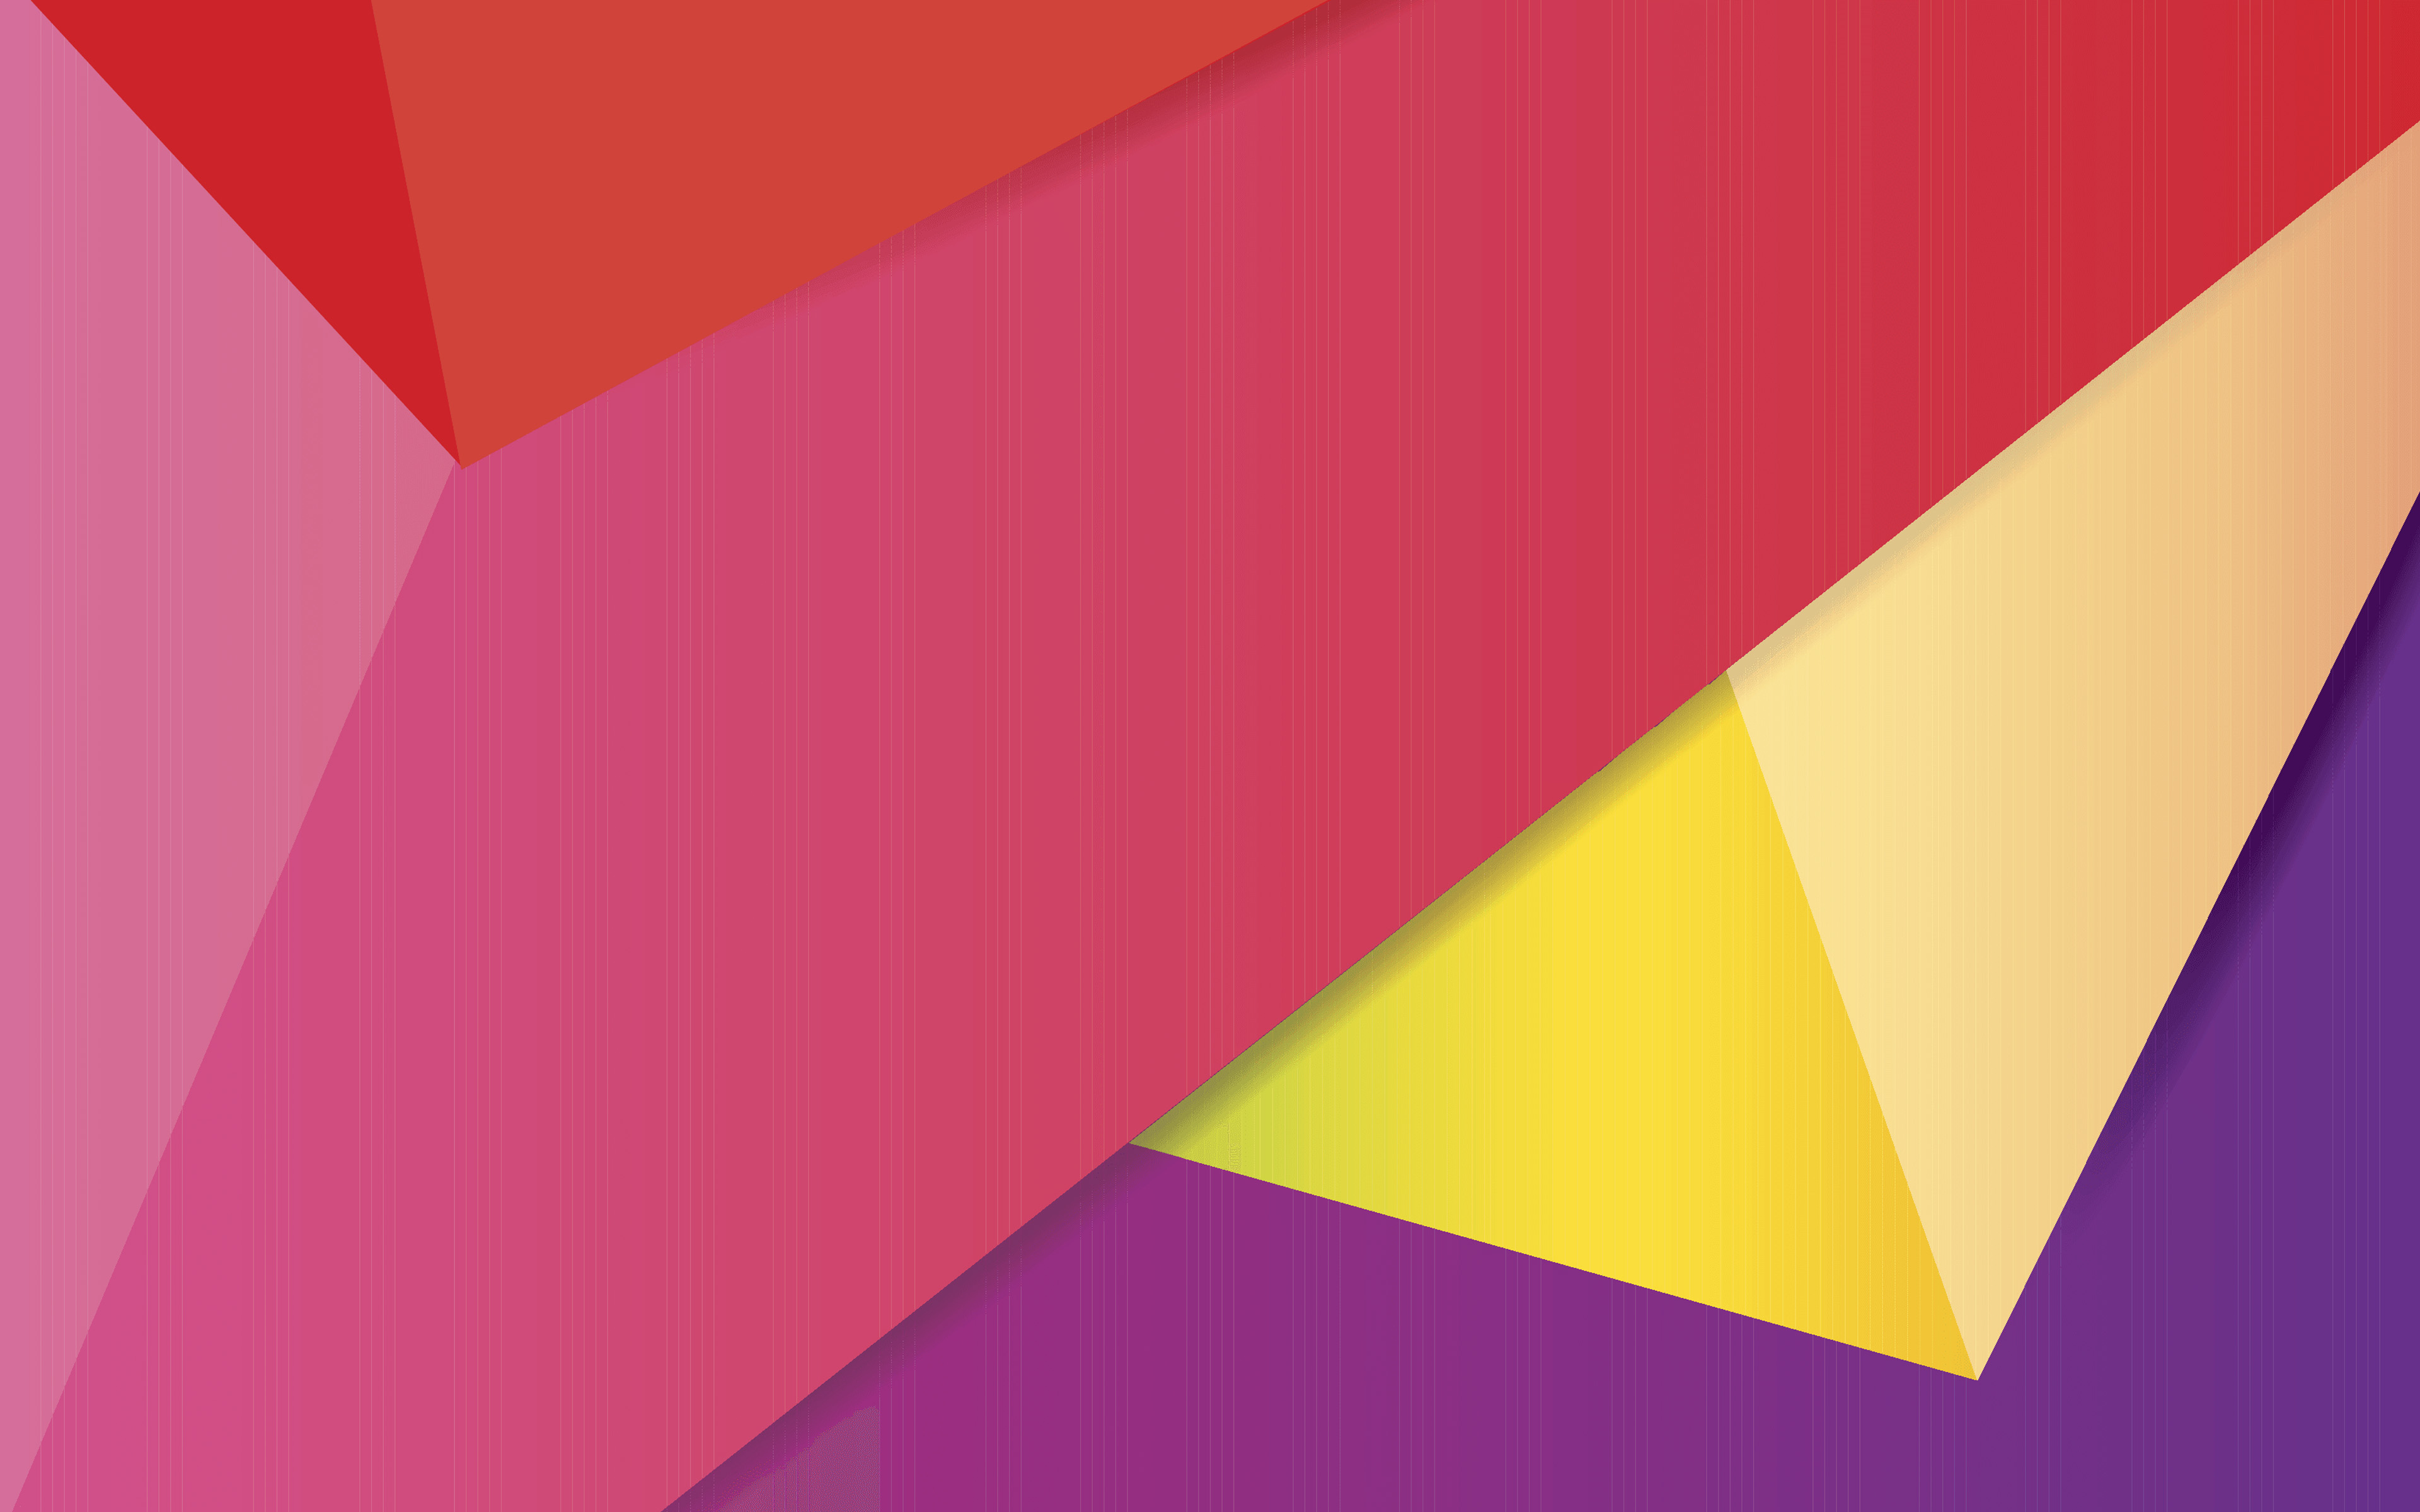 4k, geometric shapes, purple and violet, material design, lollipop, triangles, creative, strips, geometry, colorful backgrounds